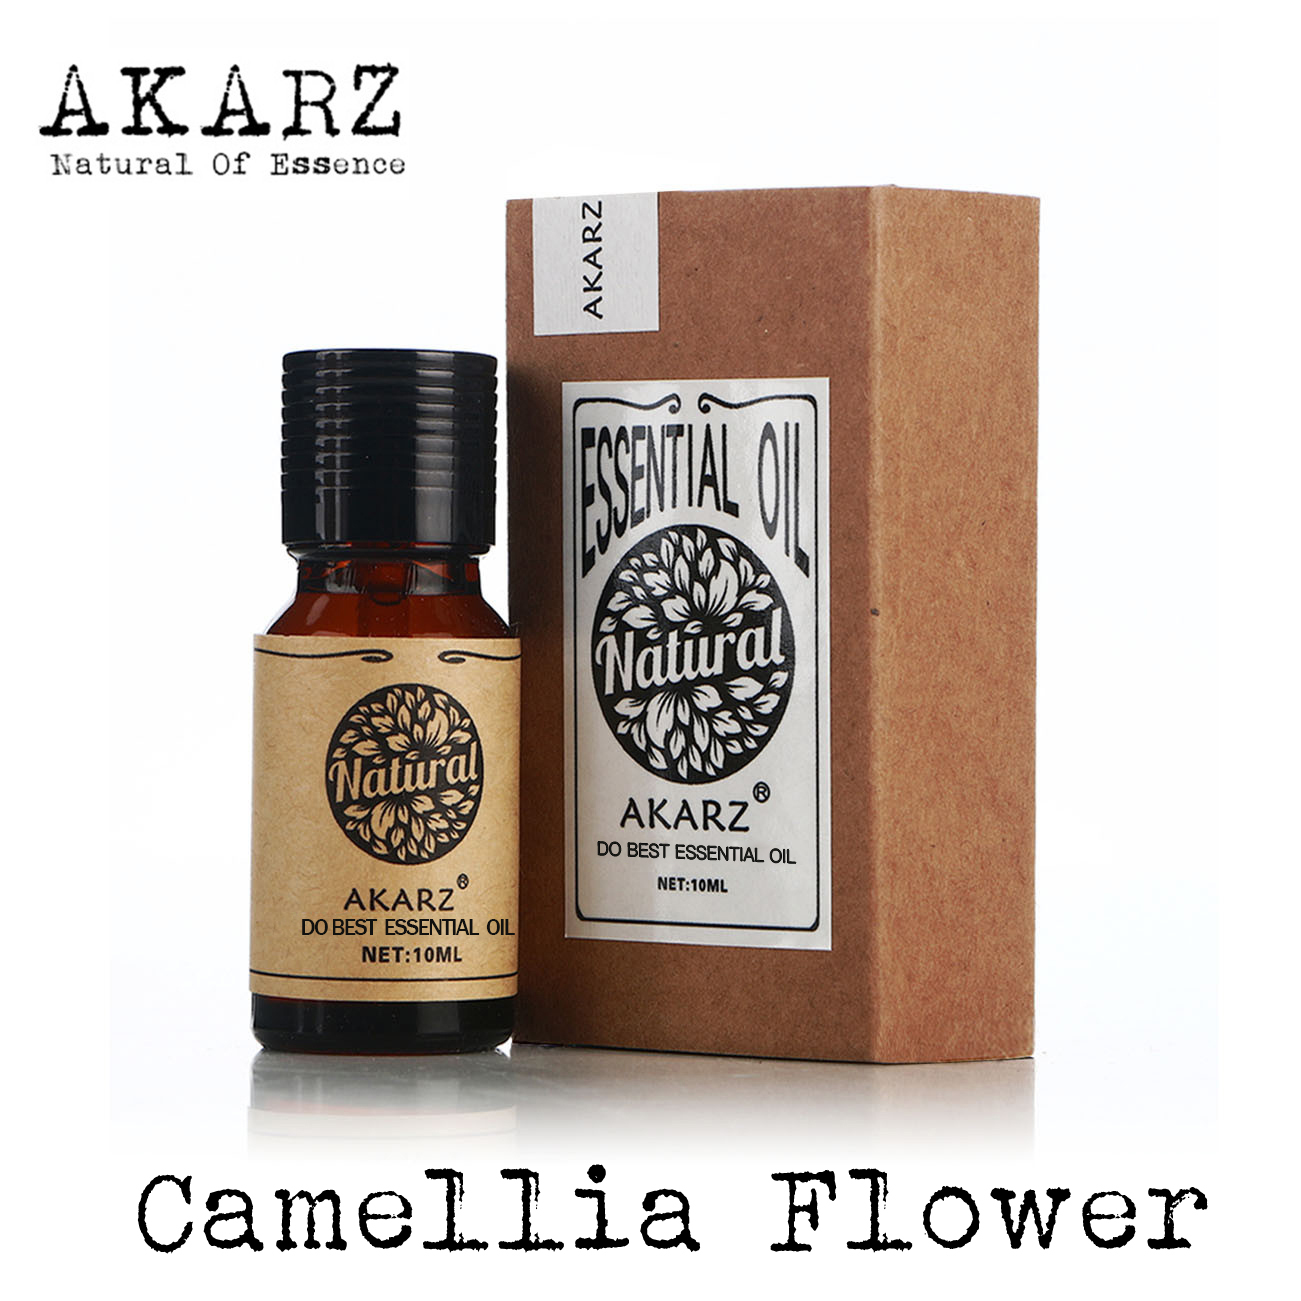 AKARZ Famous Brand Camellia Flower Essential Oil Moisturize, Hydrated Fade Skin Body Massage Care Camellia Flower Essential Oil